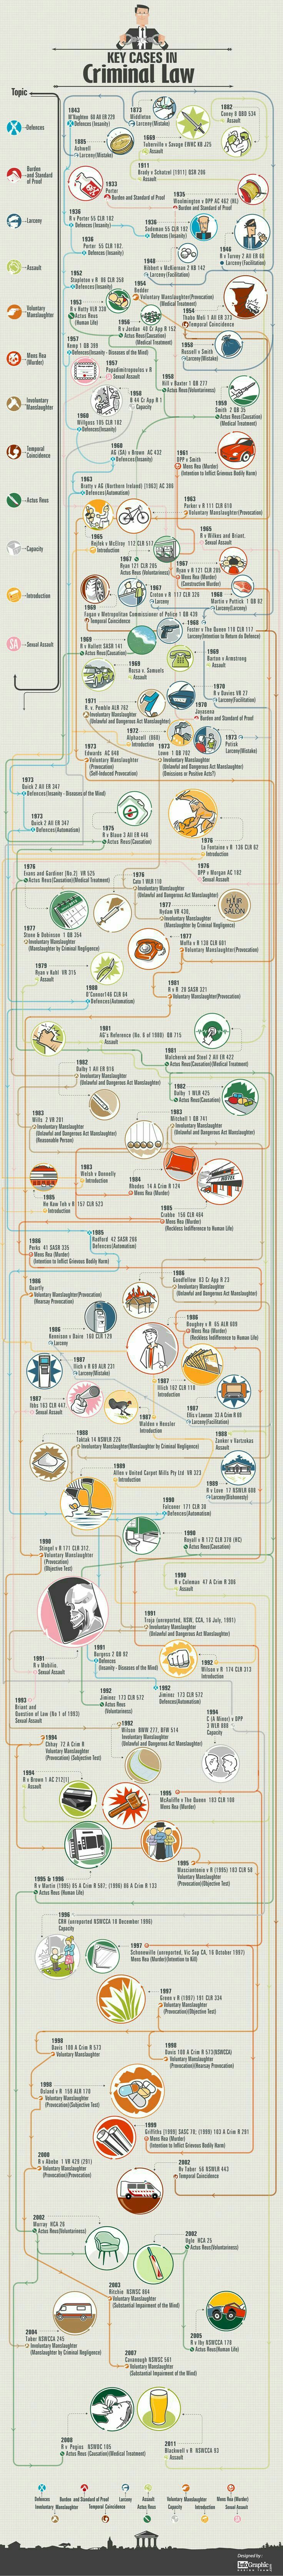 Infographic: Key Cases in Criminal Law